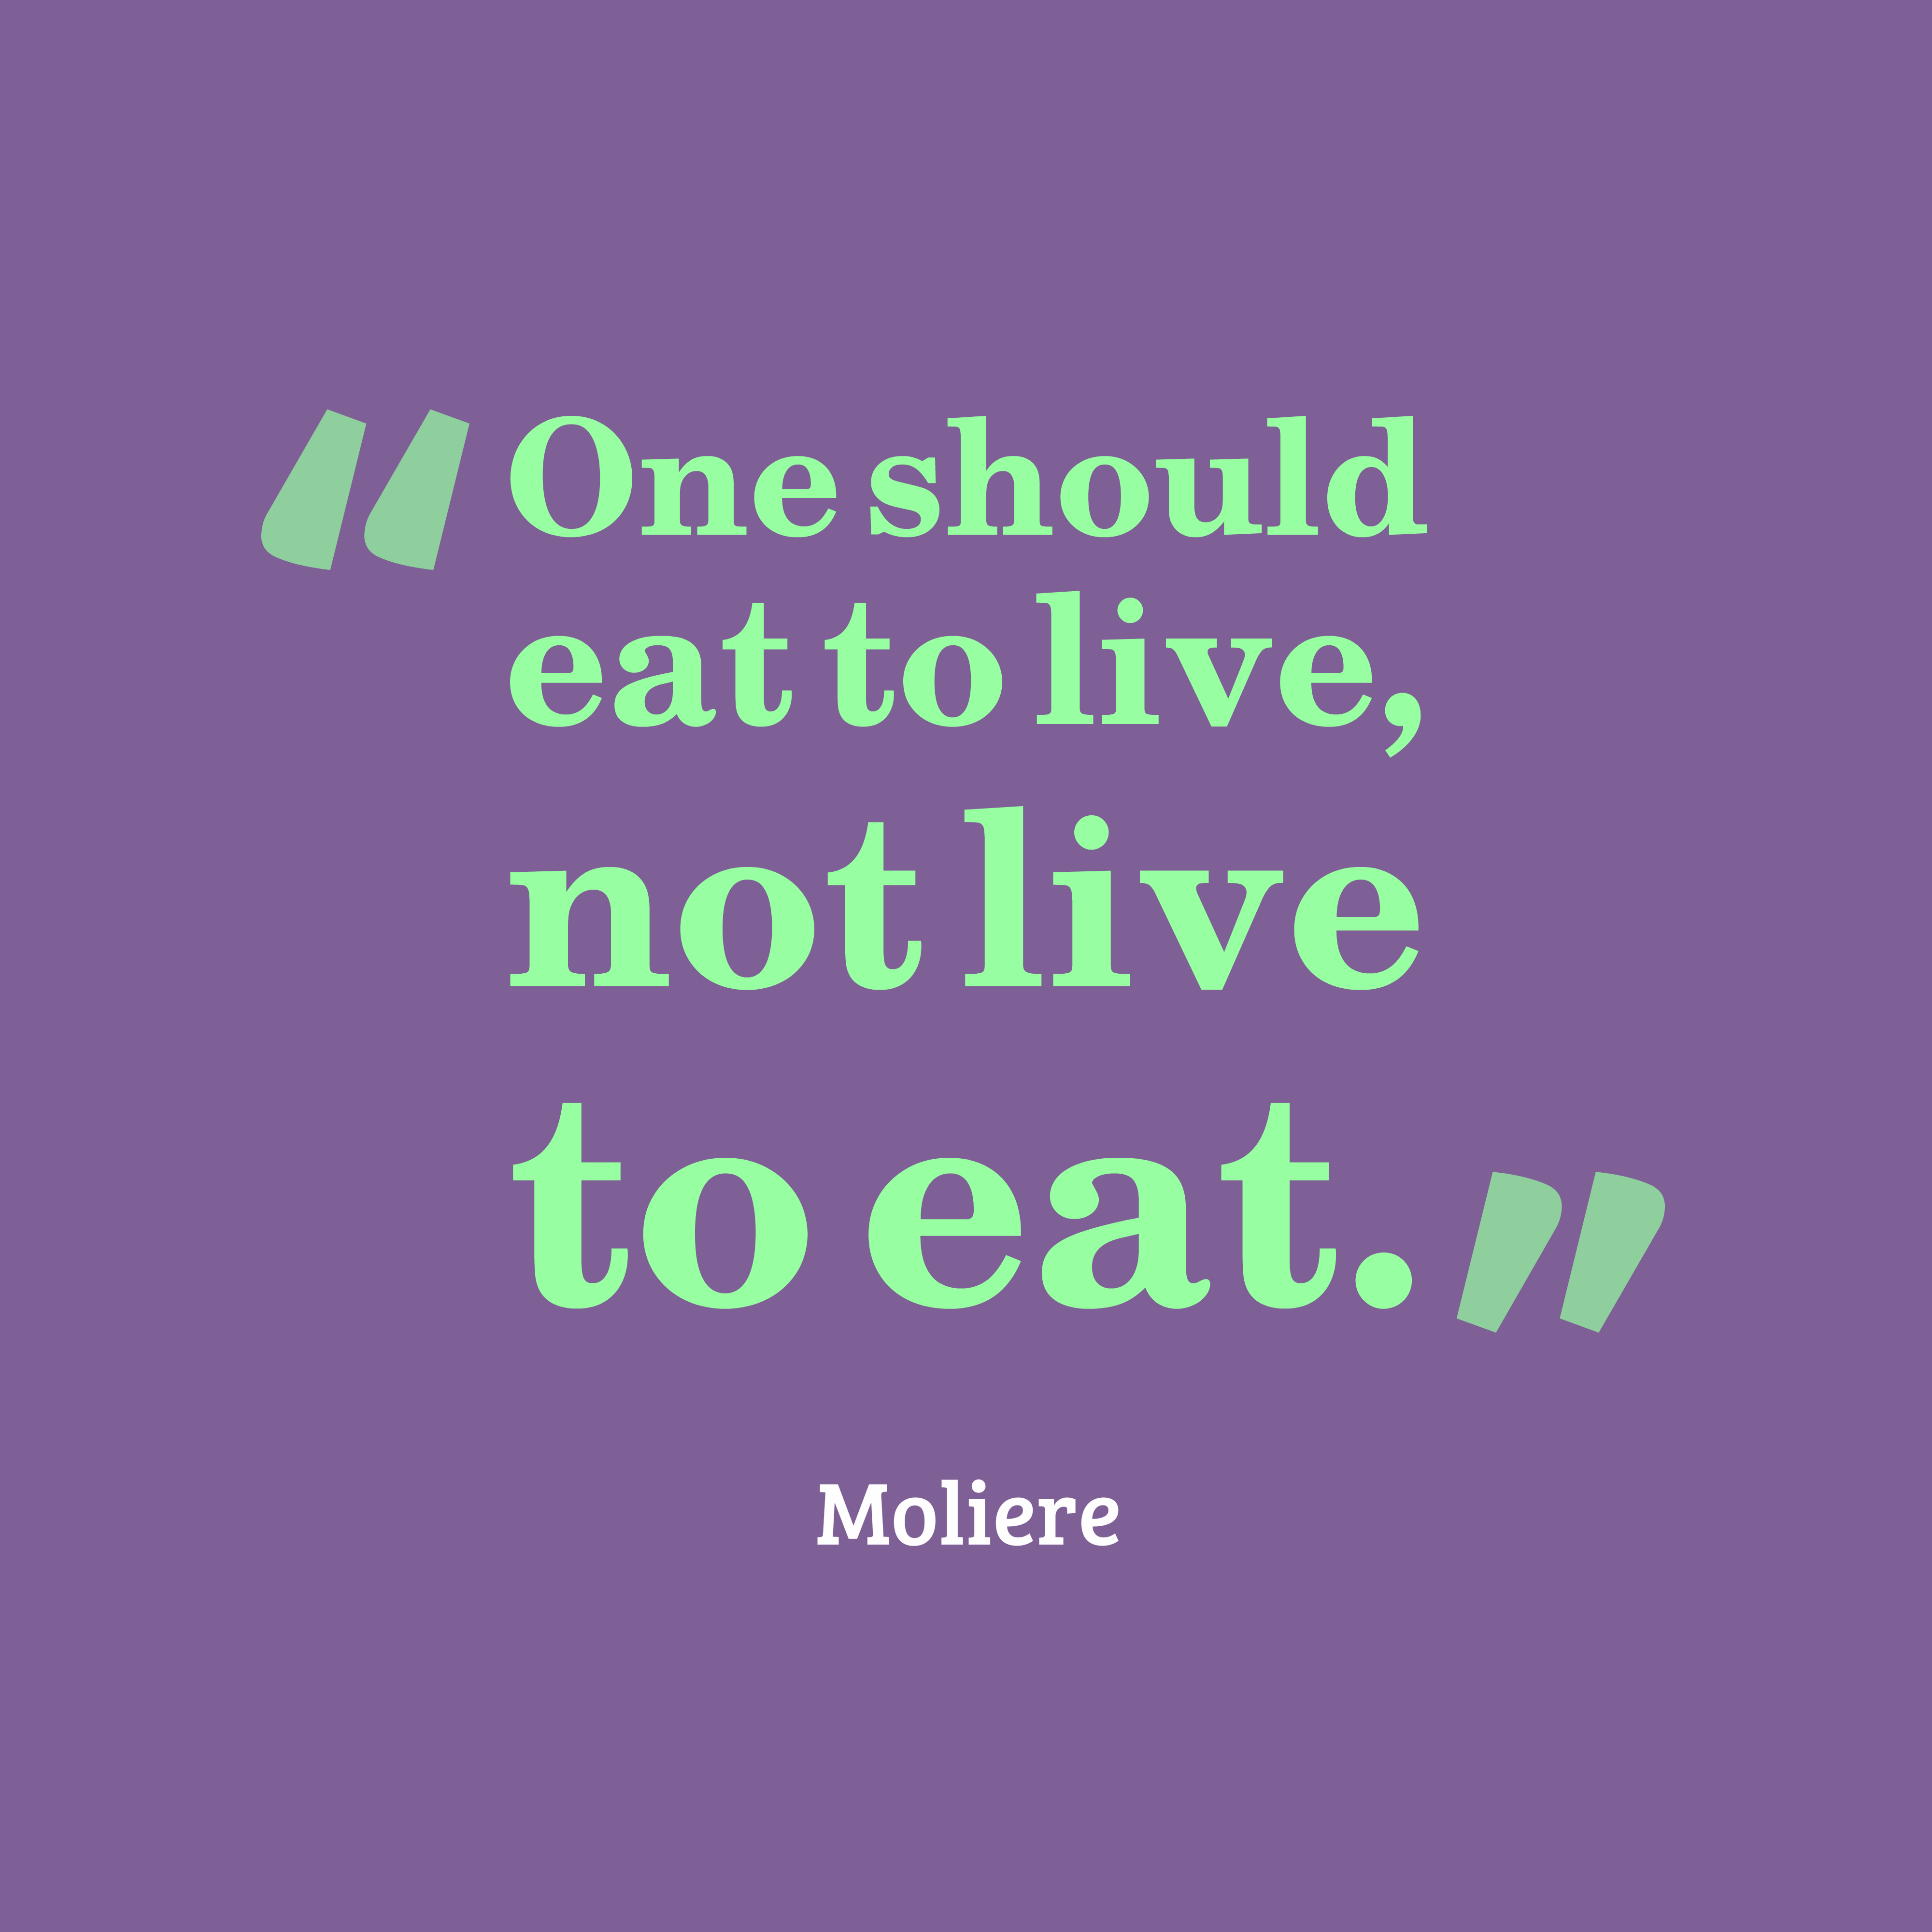 Moliere Quote About Food